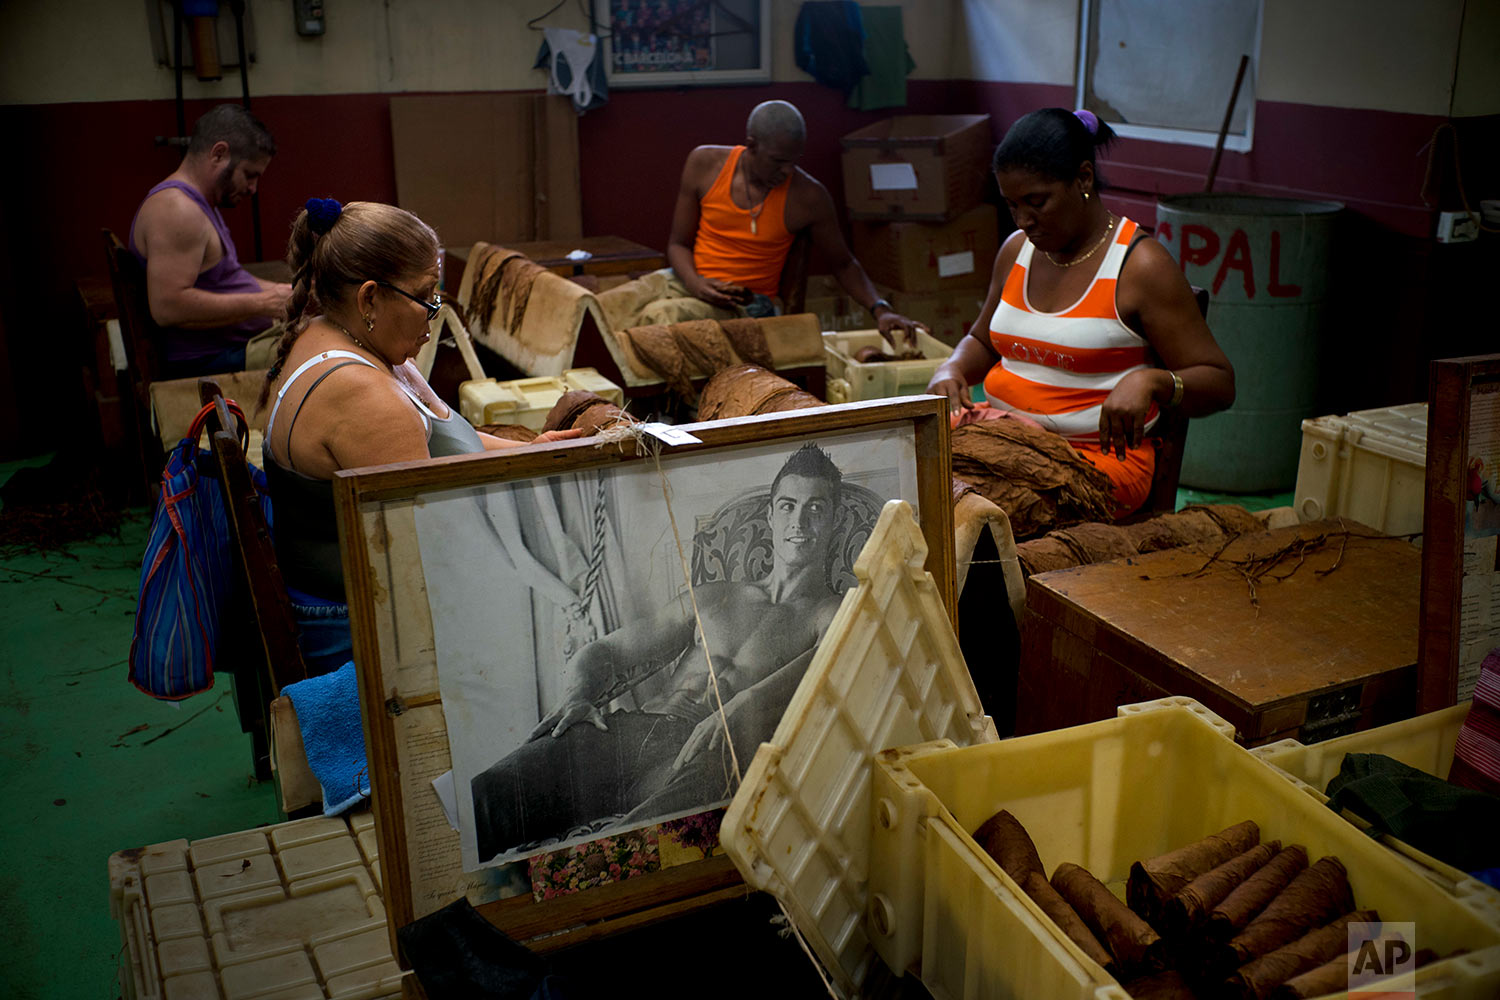 In this March 1, 2018 photo, workers select the best tobacco leaves as they sit next to a portrait of Portuguese soccer star Cristiano Ronaldo, at La Corona cigar factory in Havana, Cuba. (AP Photo/Ramon Espinosa)